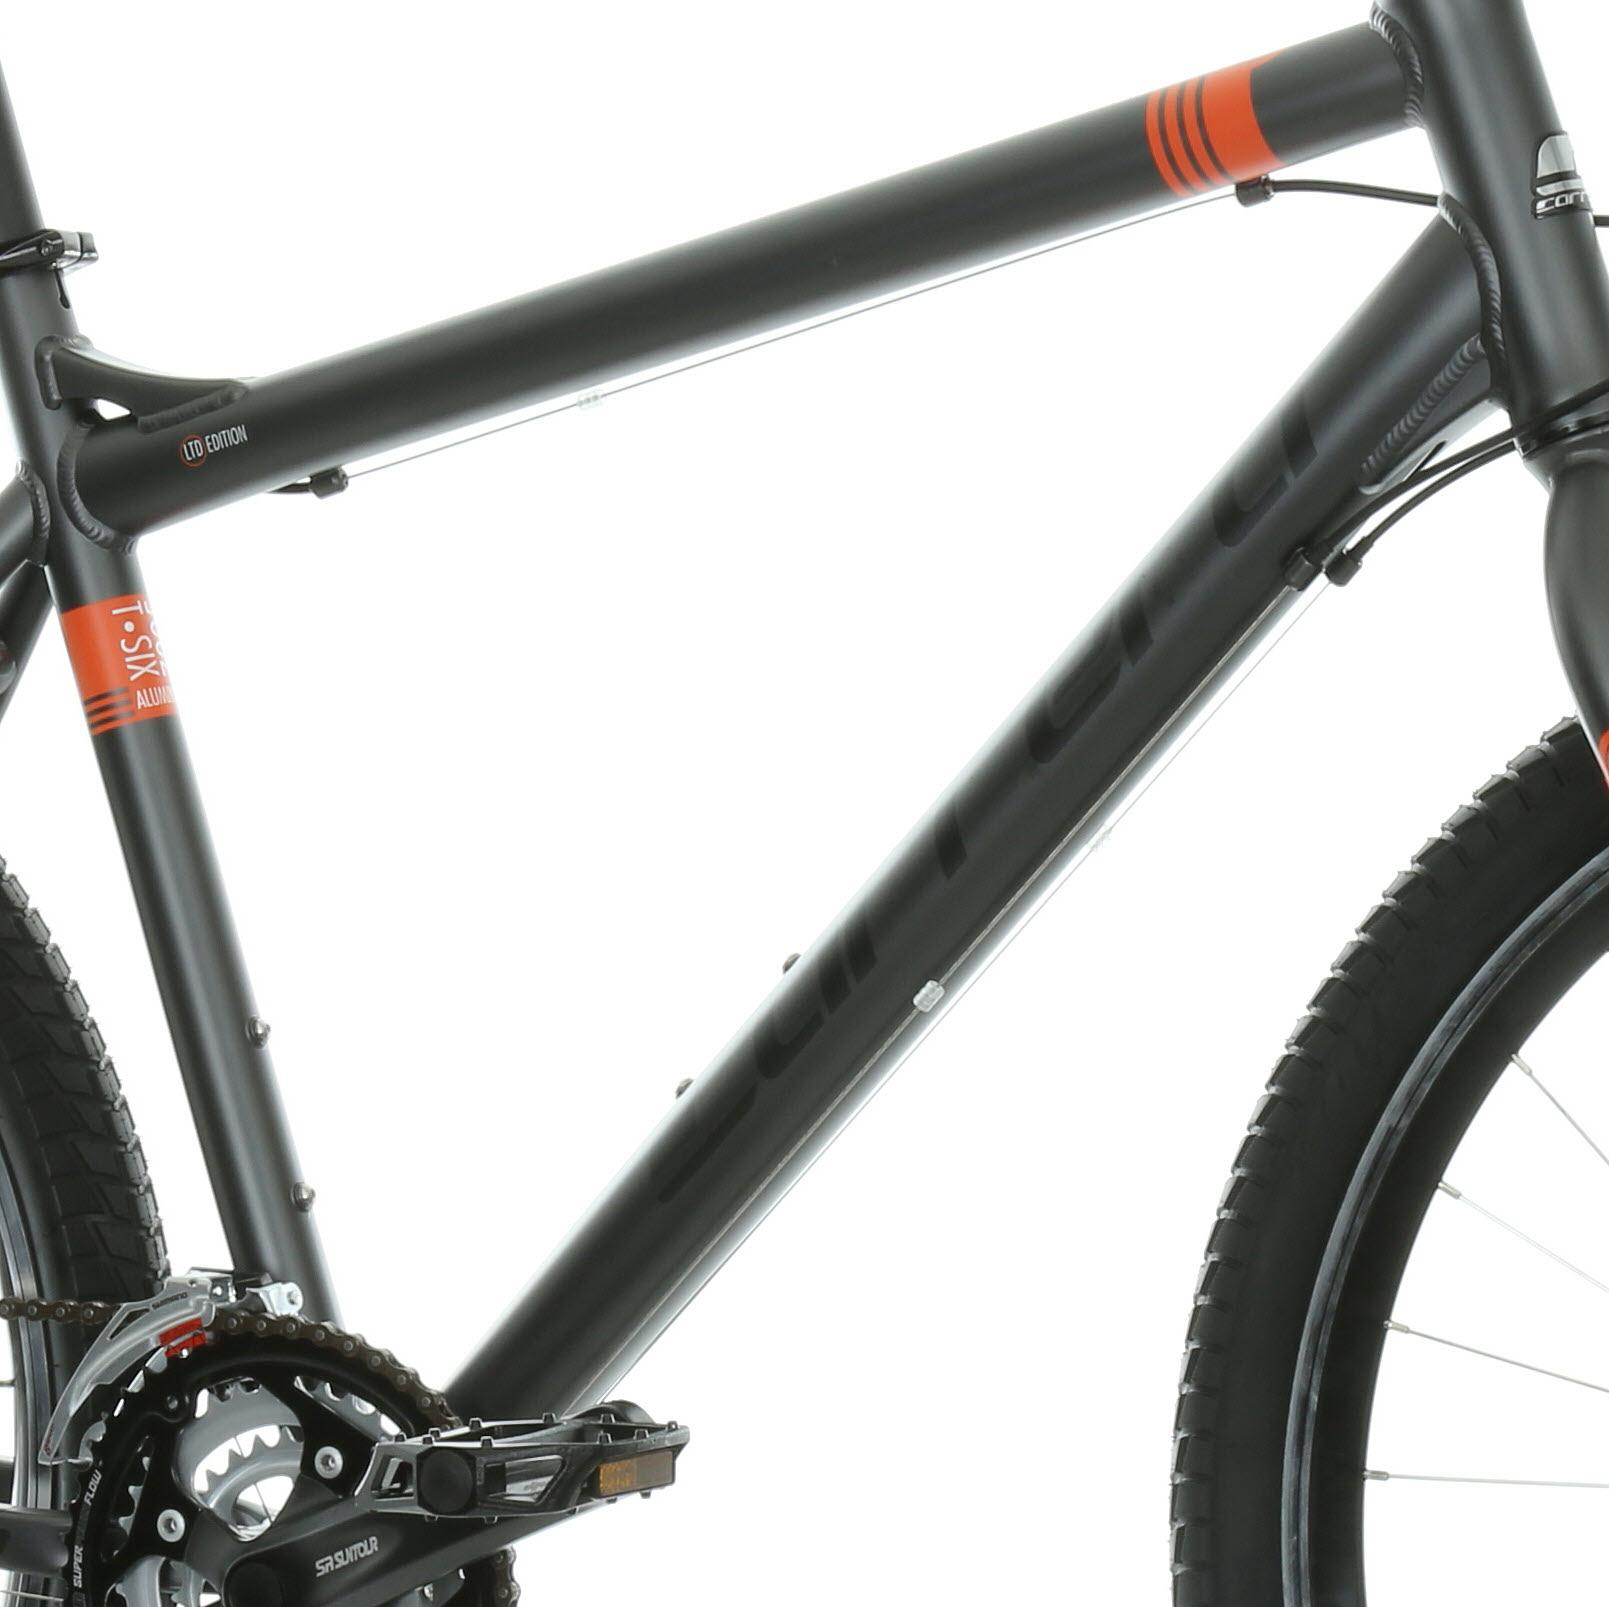 Details about Carrera Axle Limited Edition Mens Hybrid Bike 21 Gears  Shimano 27 5